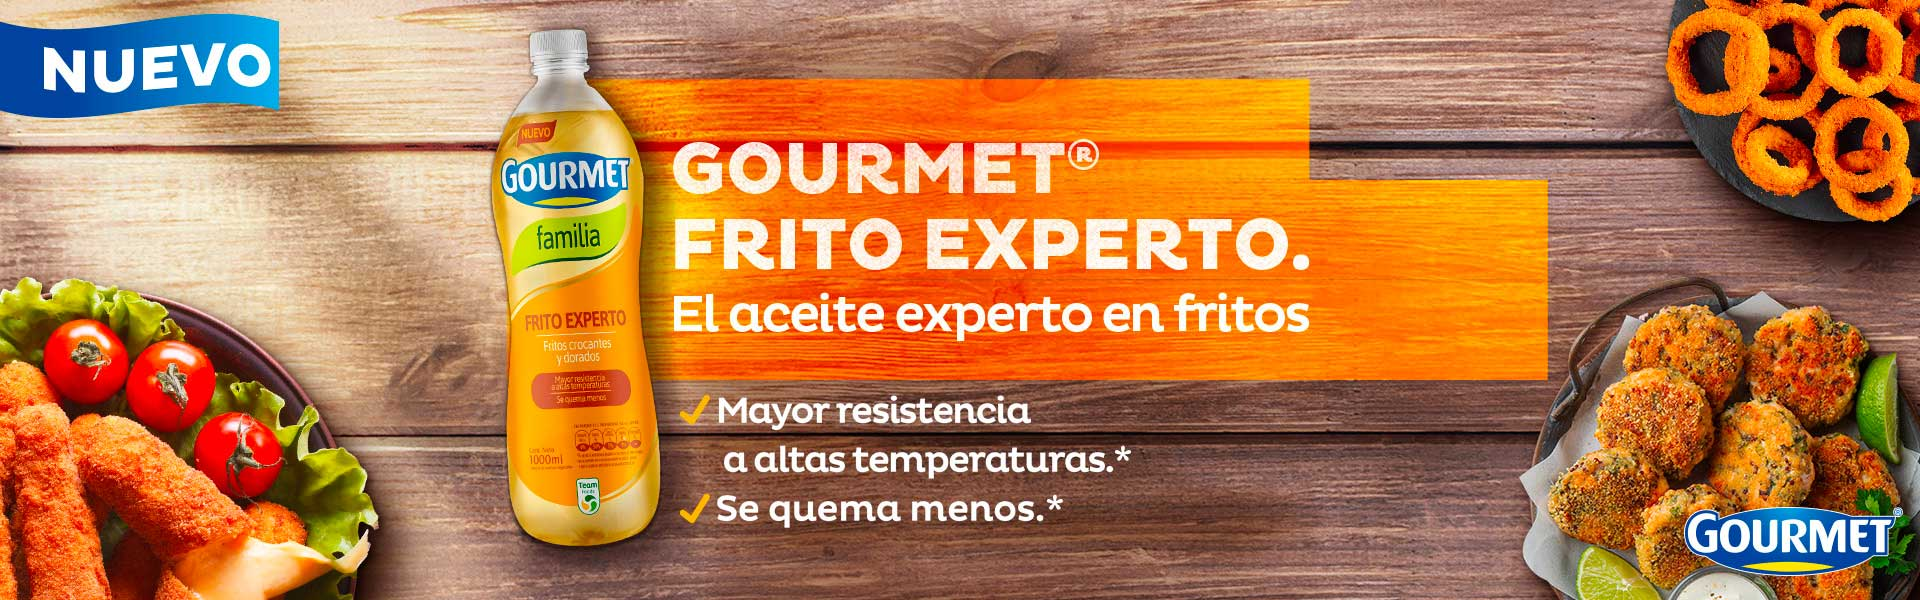 Banners-Gourmet